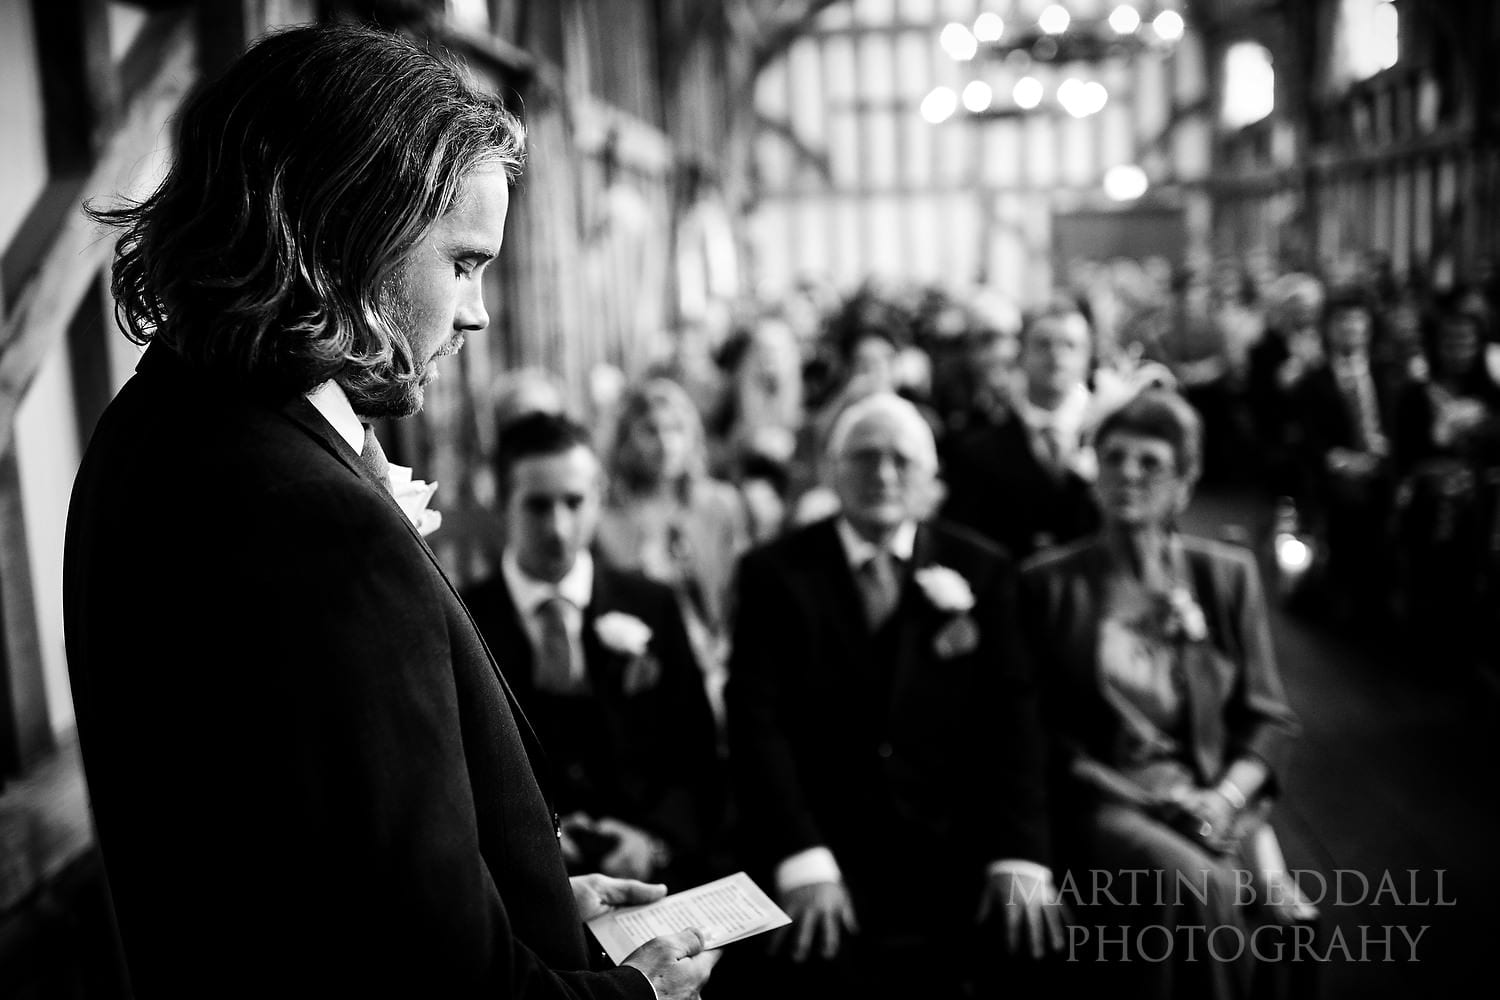 Reading at the wedding ceremony